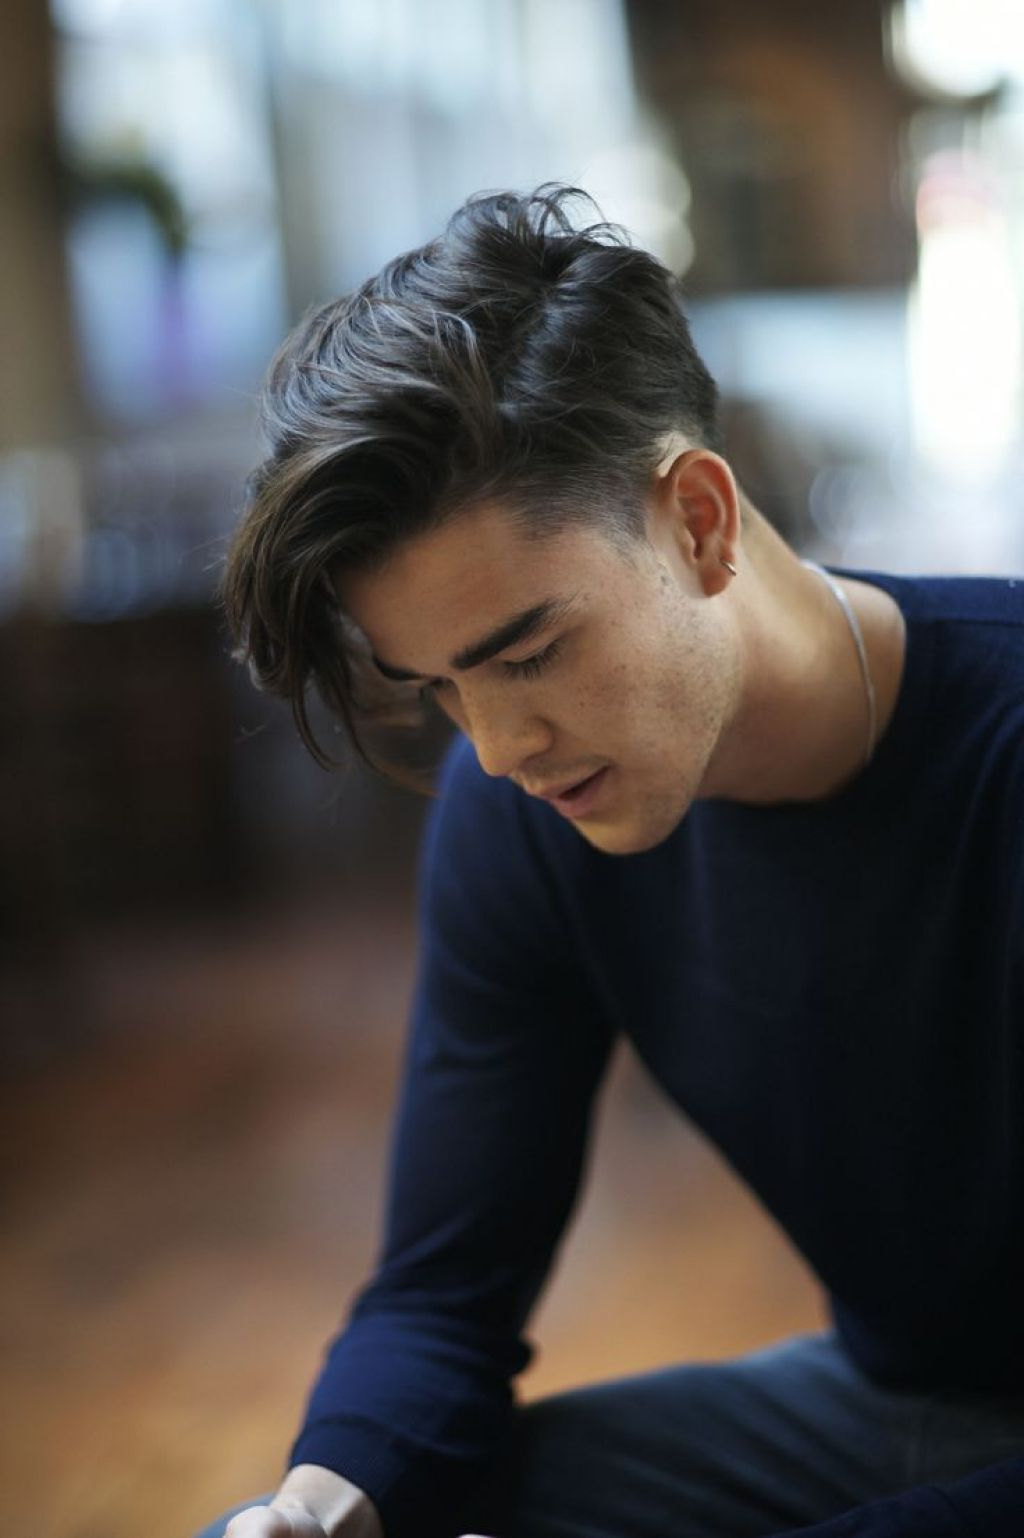 Undercut Hairstyle Men Asian Men Hairstyles Pictures \u2013 Page 53 Of 358 \u2013 Men  Short Hair, Medium